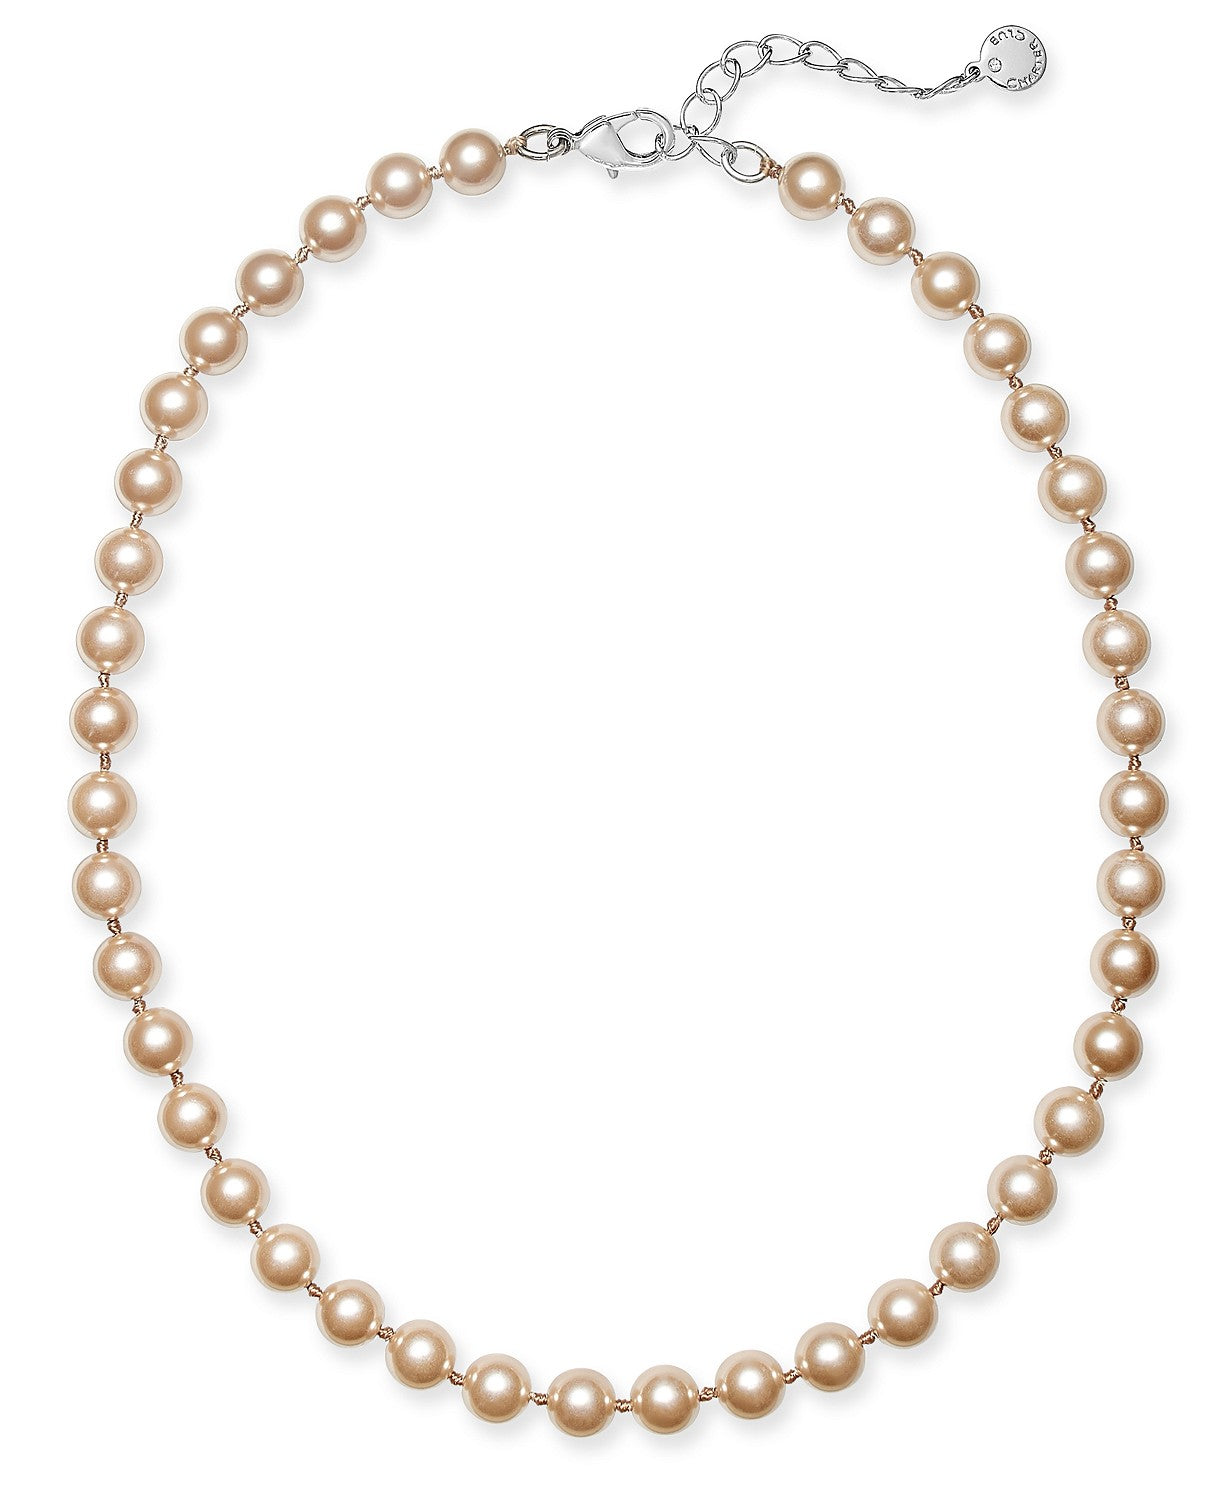 "Charter Club Silver-Tone Imitation Pearl Necklace, 16"" + 6"" extender"